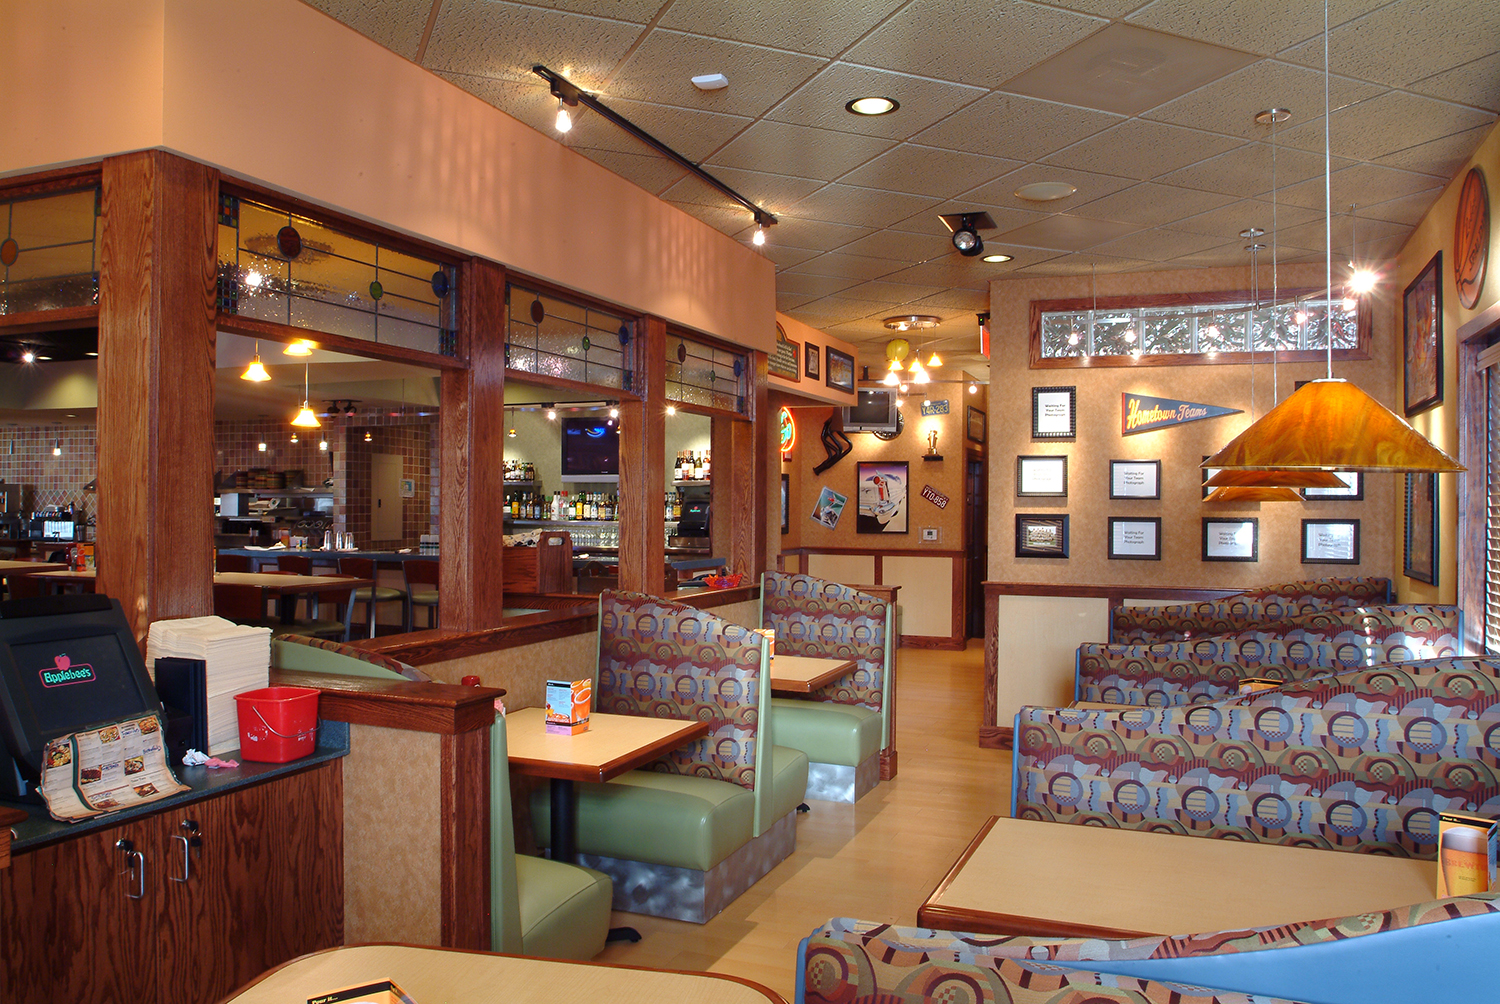 Applebee's interior